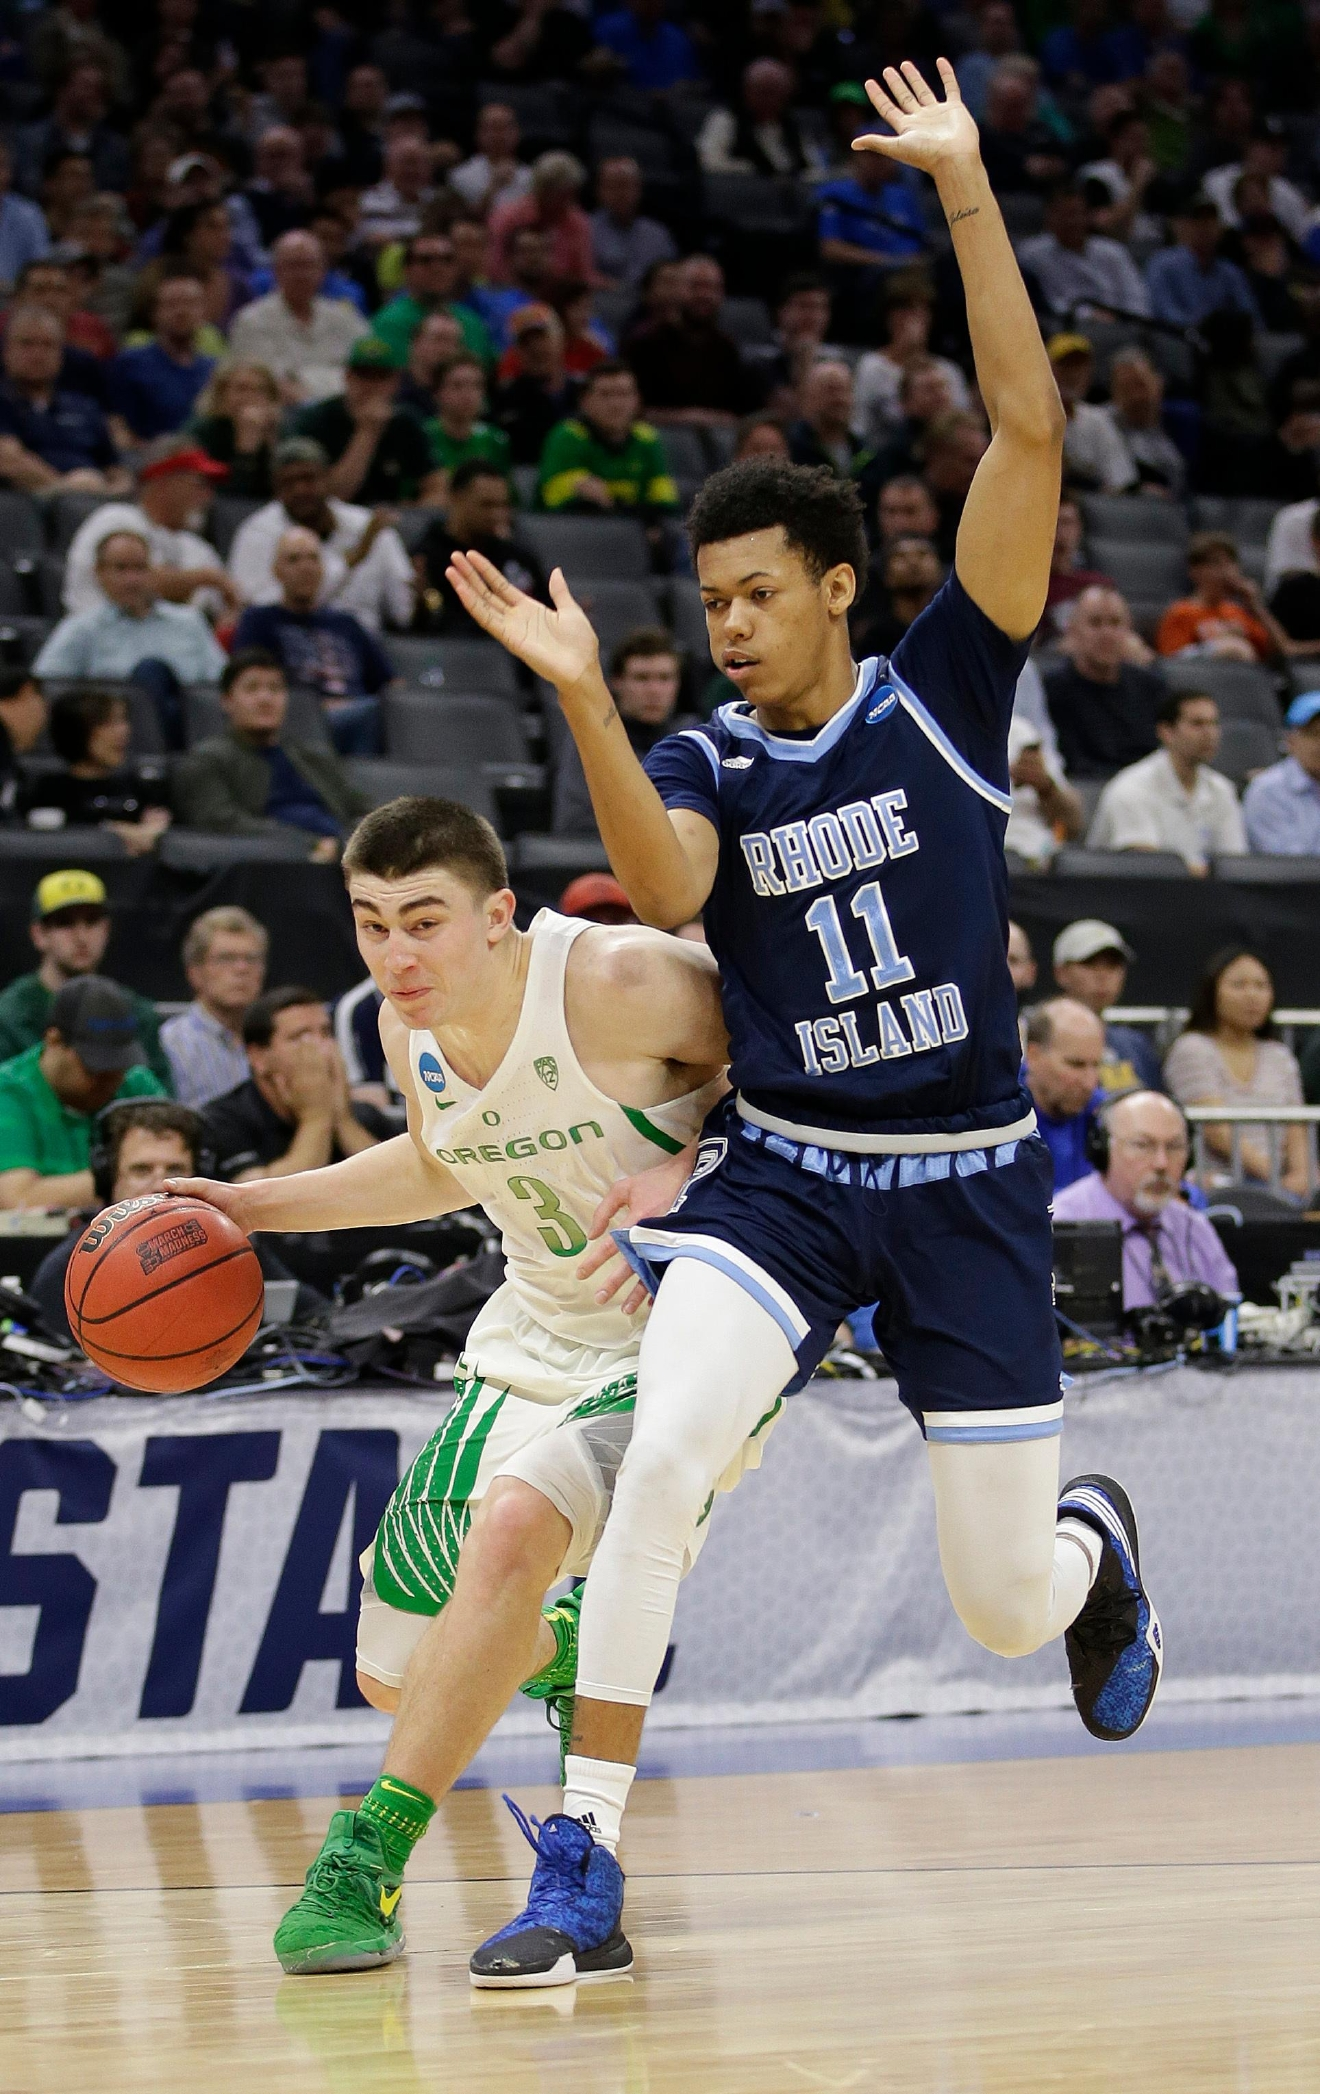 Oregon guard Payton Pritchard, left, drives against Rhode Island guard Jeff Dowtin during the first half of a second-round game of the NCAA men's college basketball tournament in Sacramento, Calif., Sunday, March 19, 2017. (AP Photo/Rich Pedroncelli)